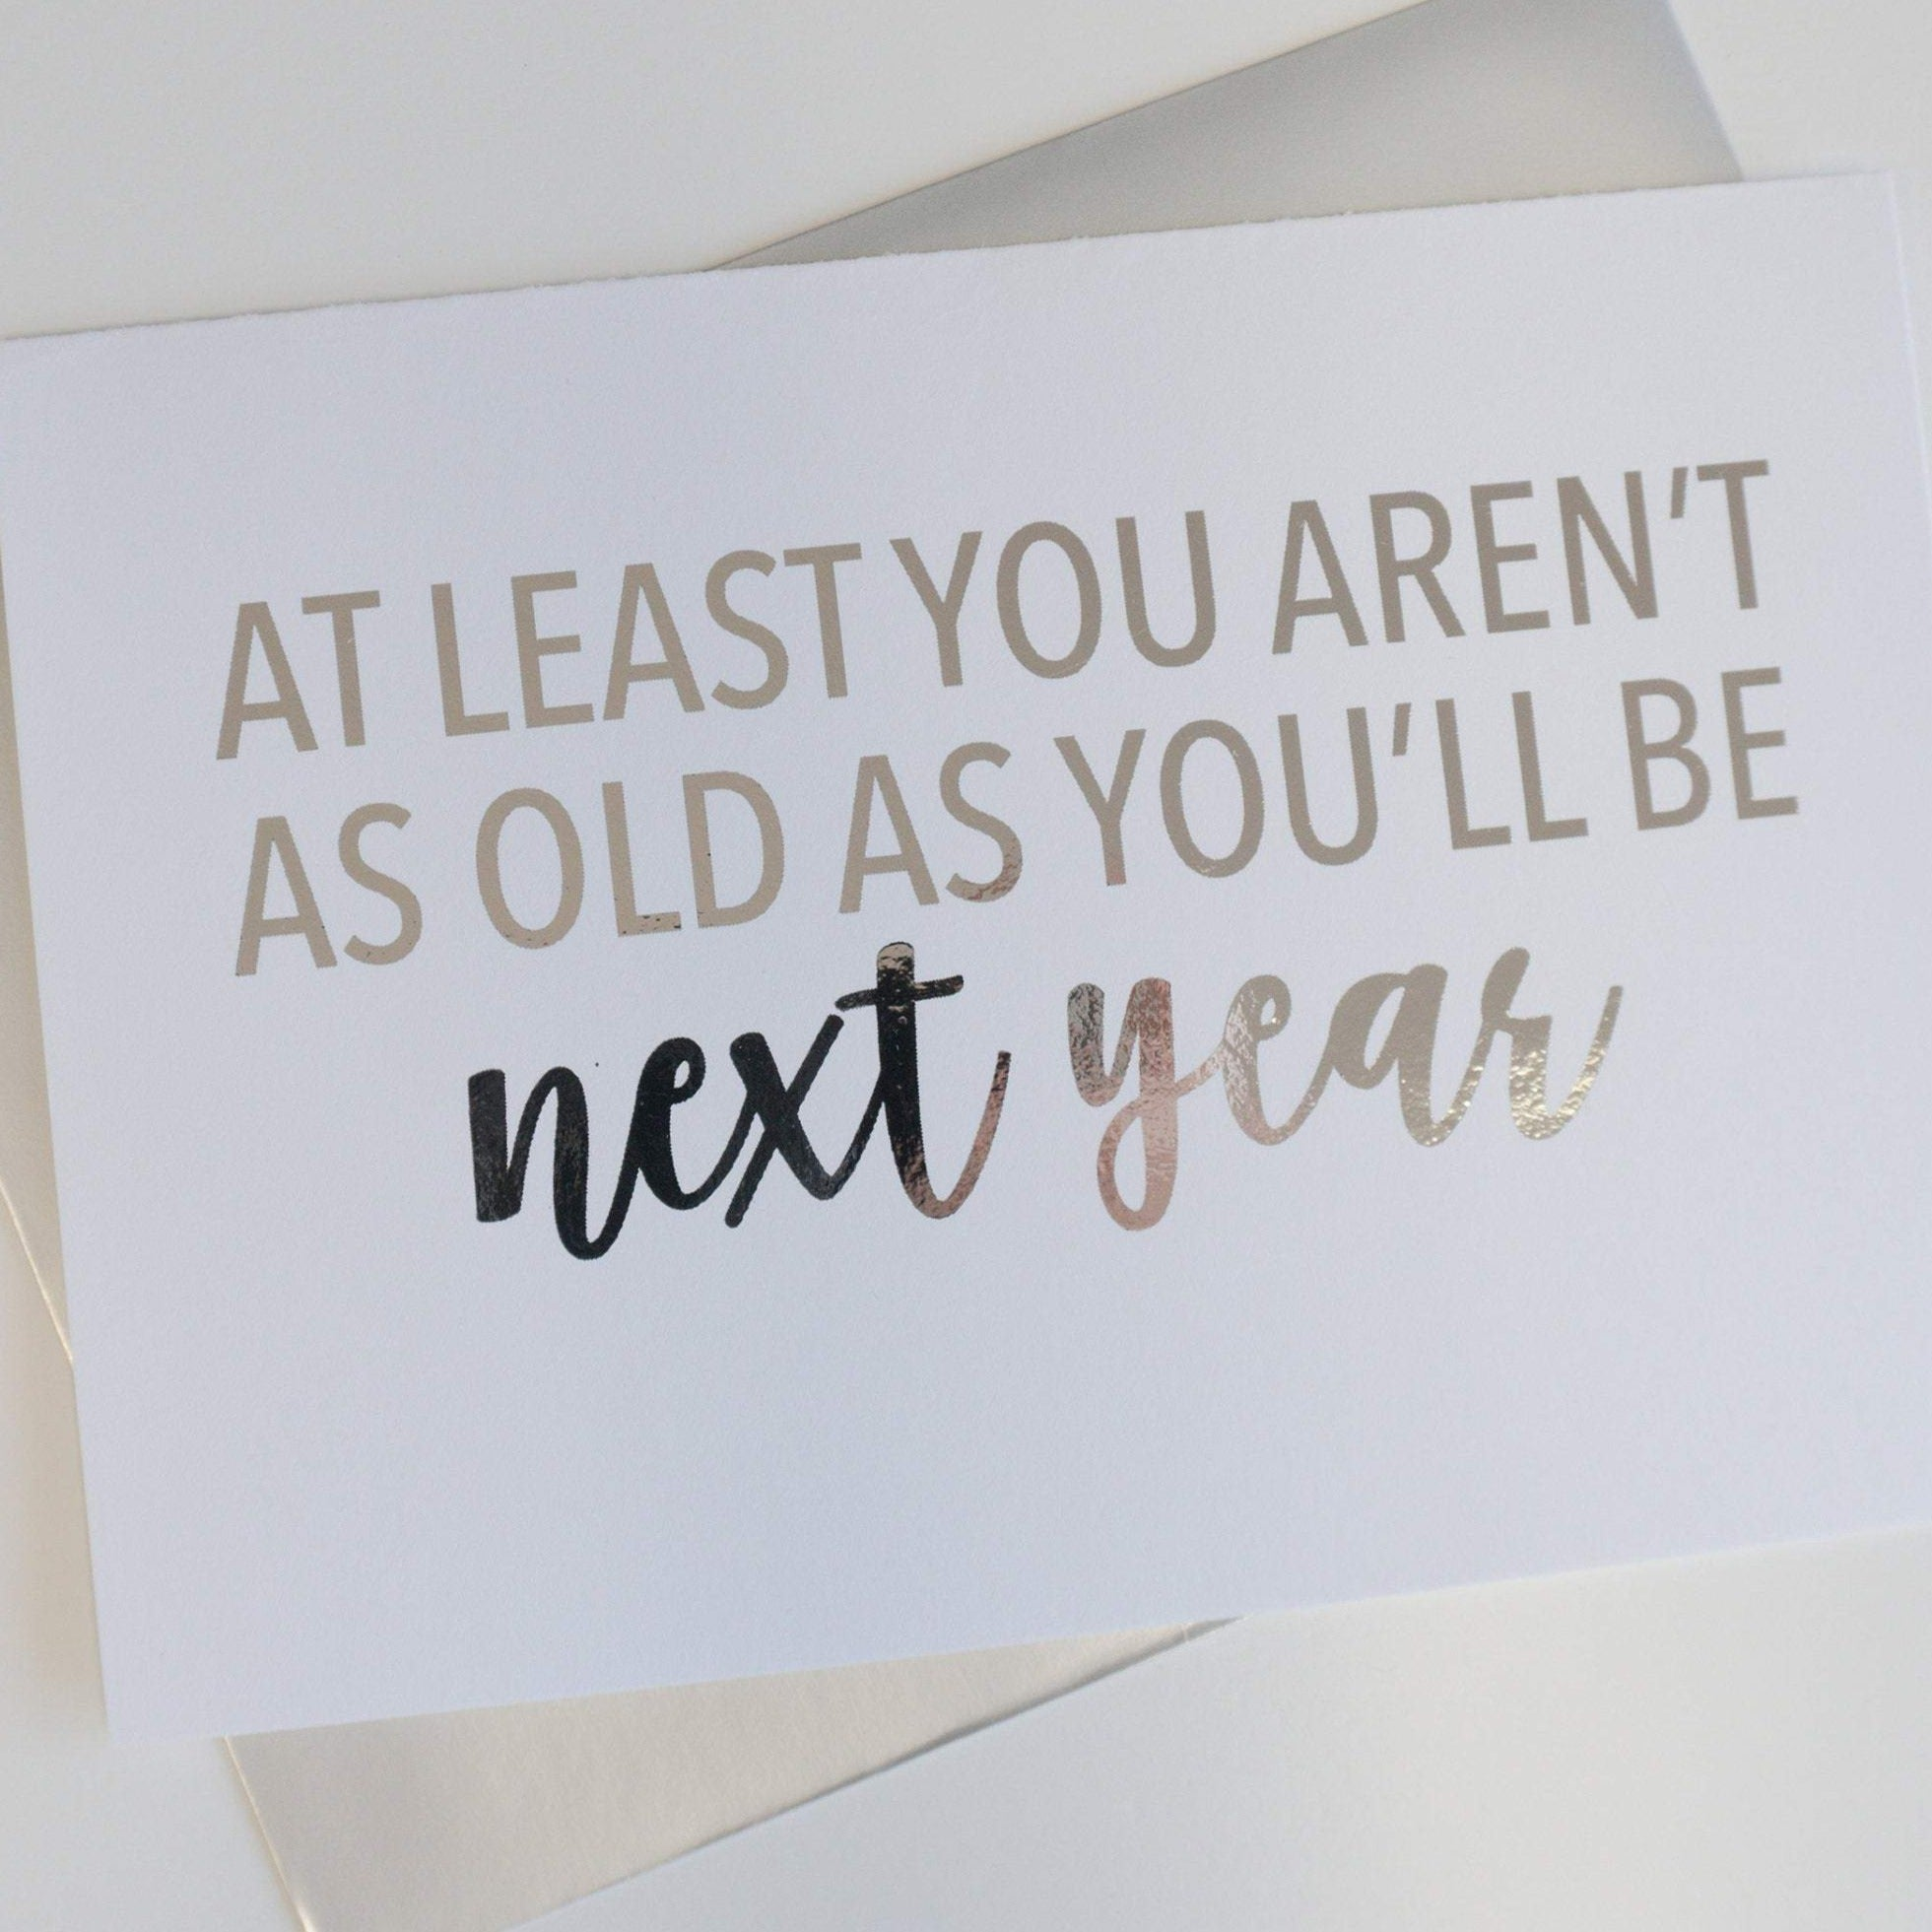 You Aren't As Old As You'll Be Next Year Foiled Card & Envelope